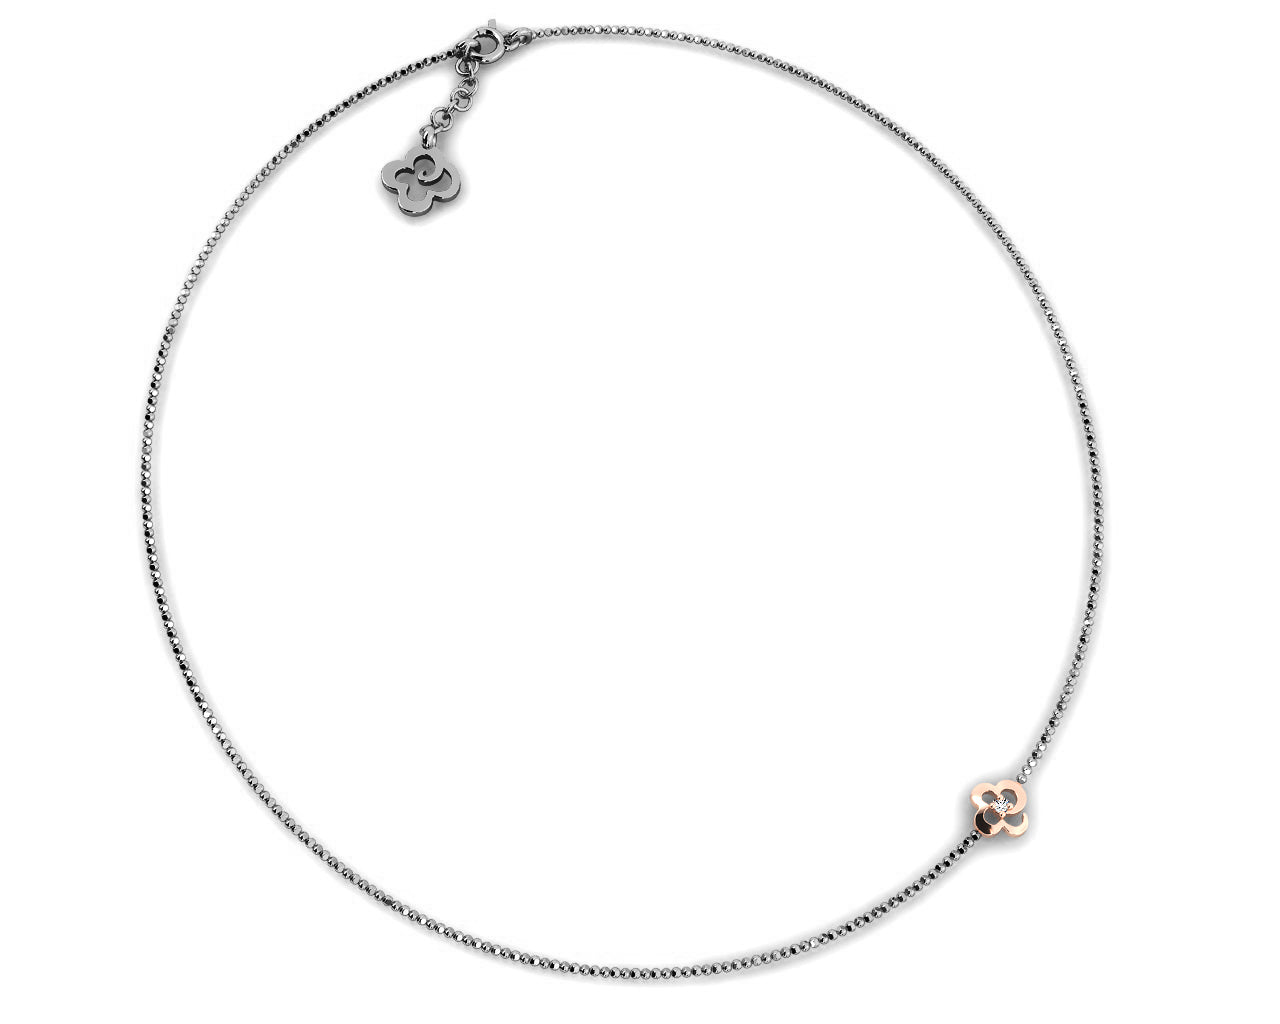 Necklace Sterling Silver in Rose Gold Plating for Women 'Kukkadas Shadow Charm Me '